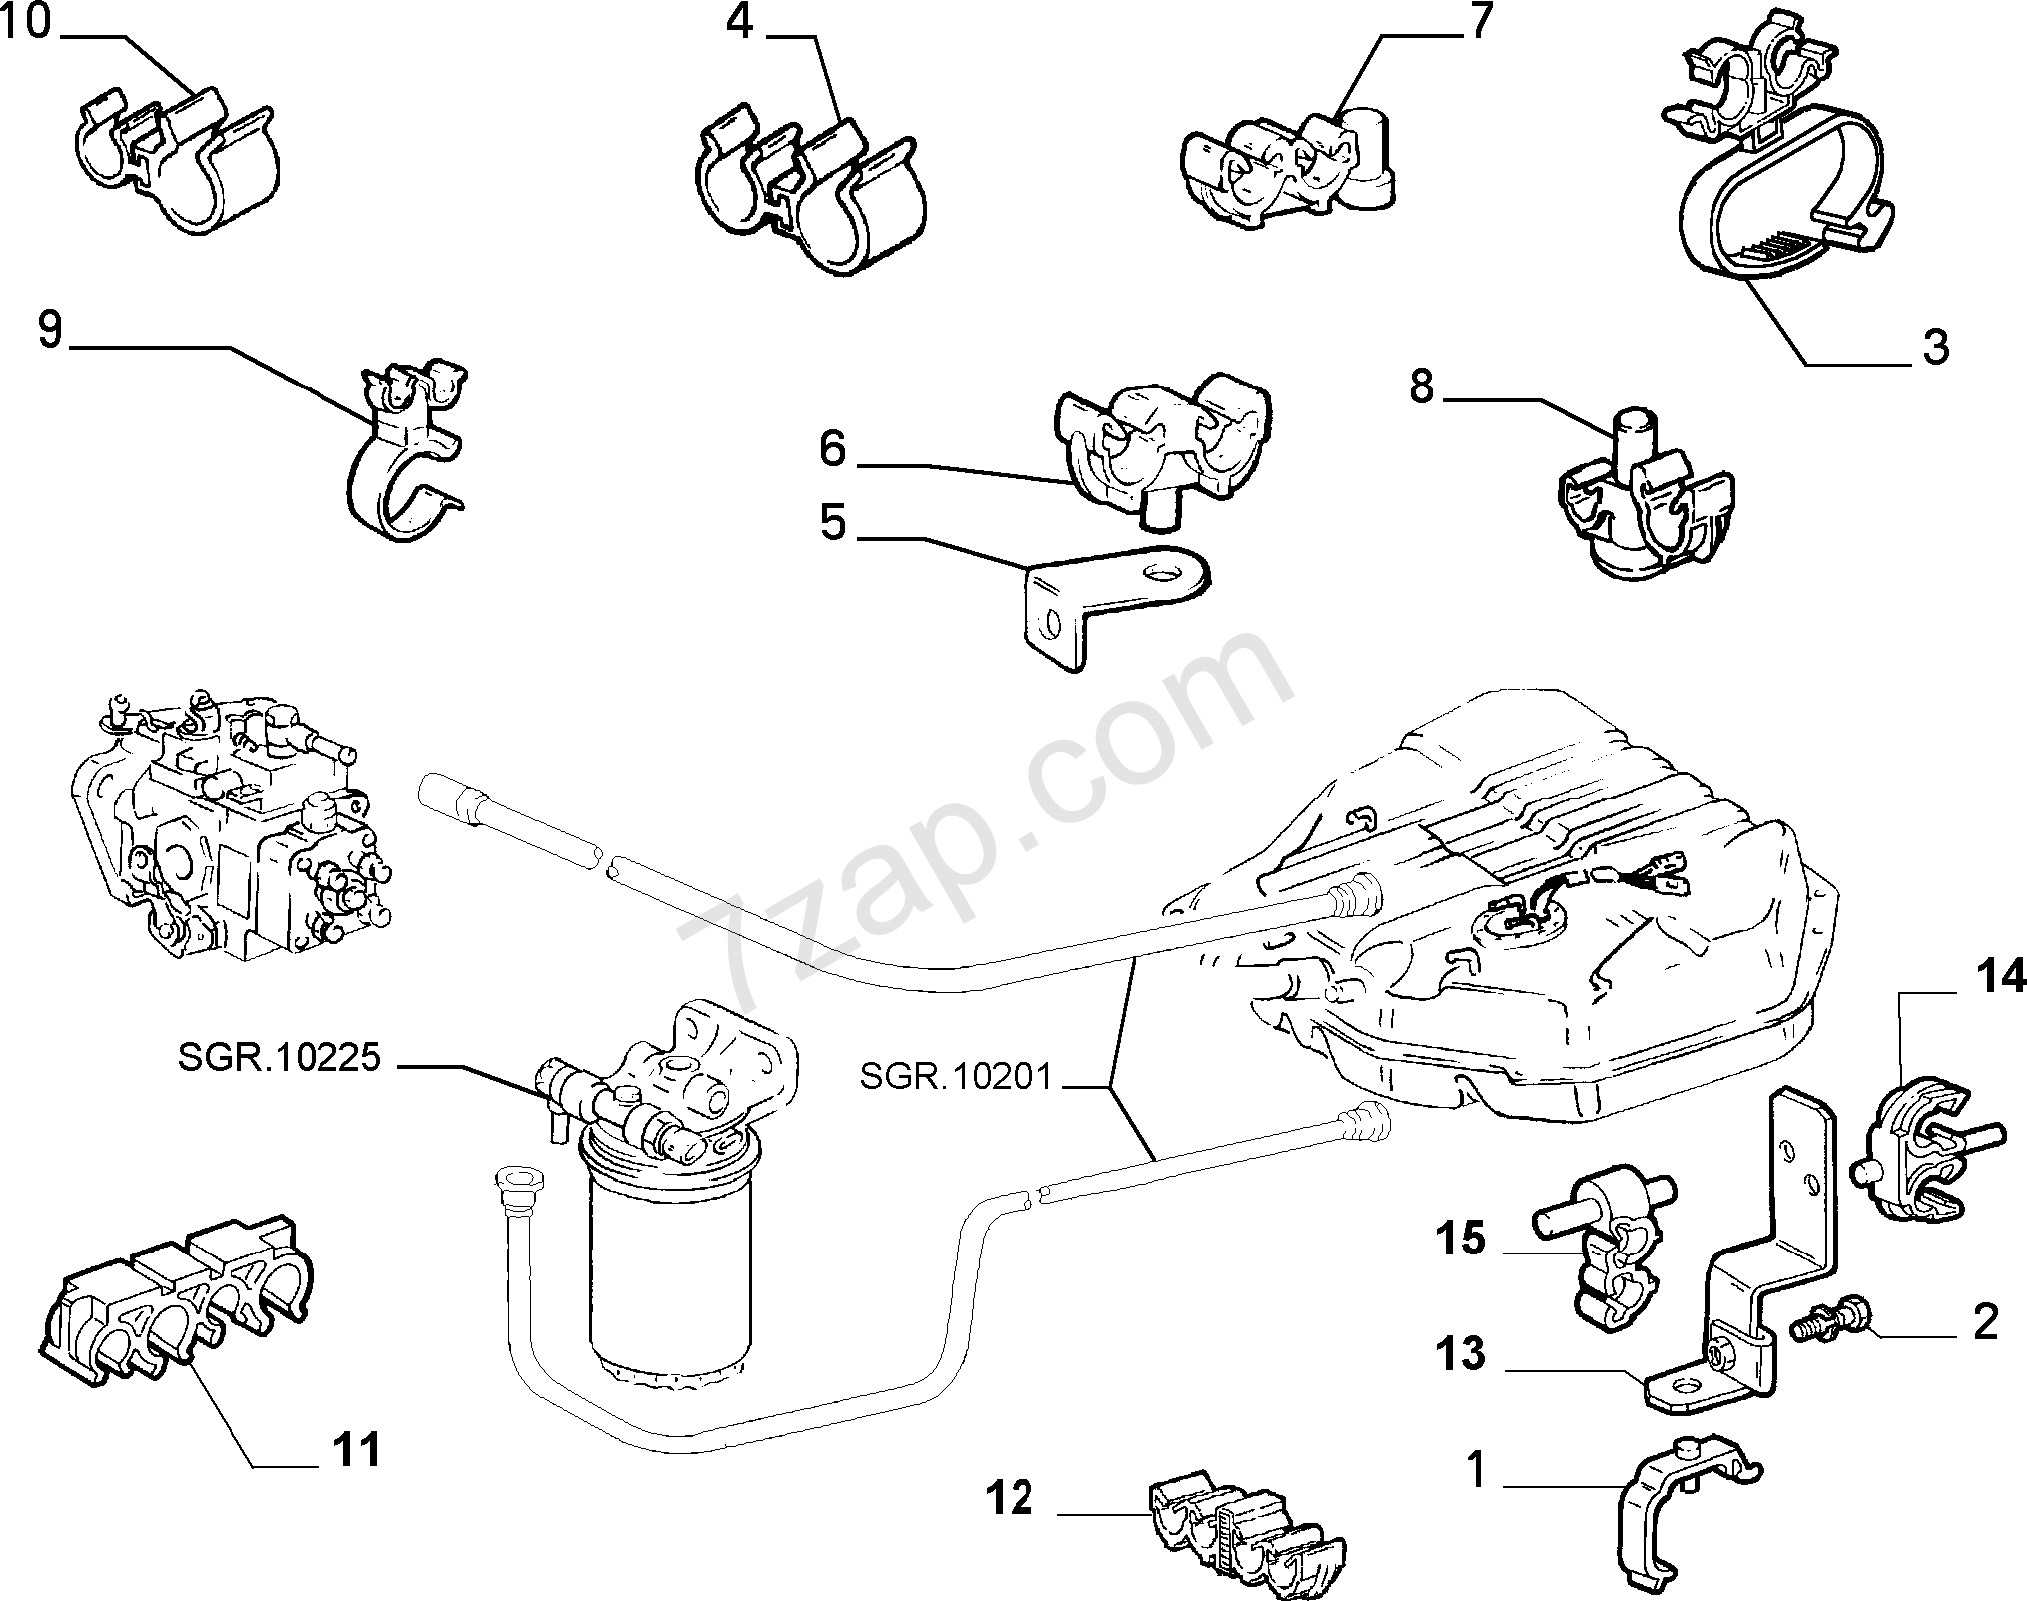 Fiat Ducato Fuel System Diagram Explained Wiring Diagrams Pump Line Fixing Pro Ducato94 Diesel 1994 2002 Commercial